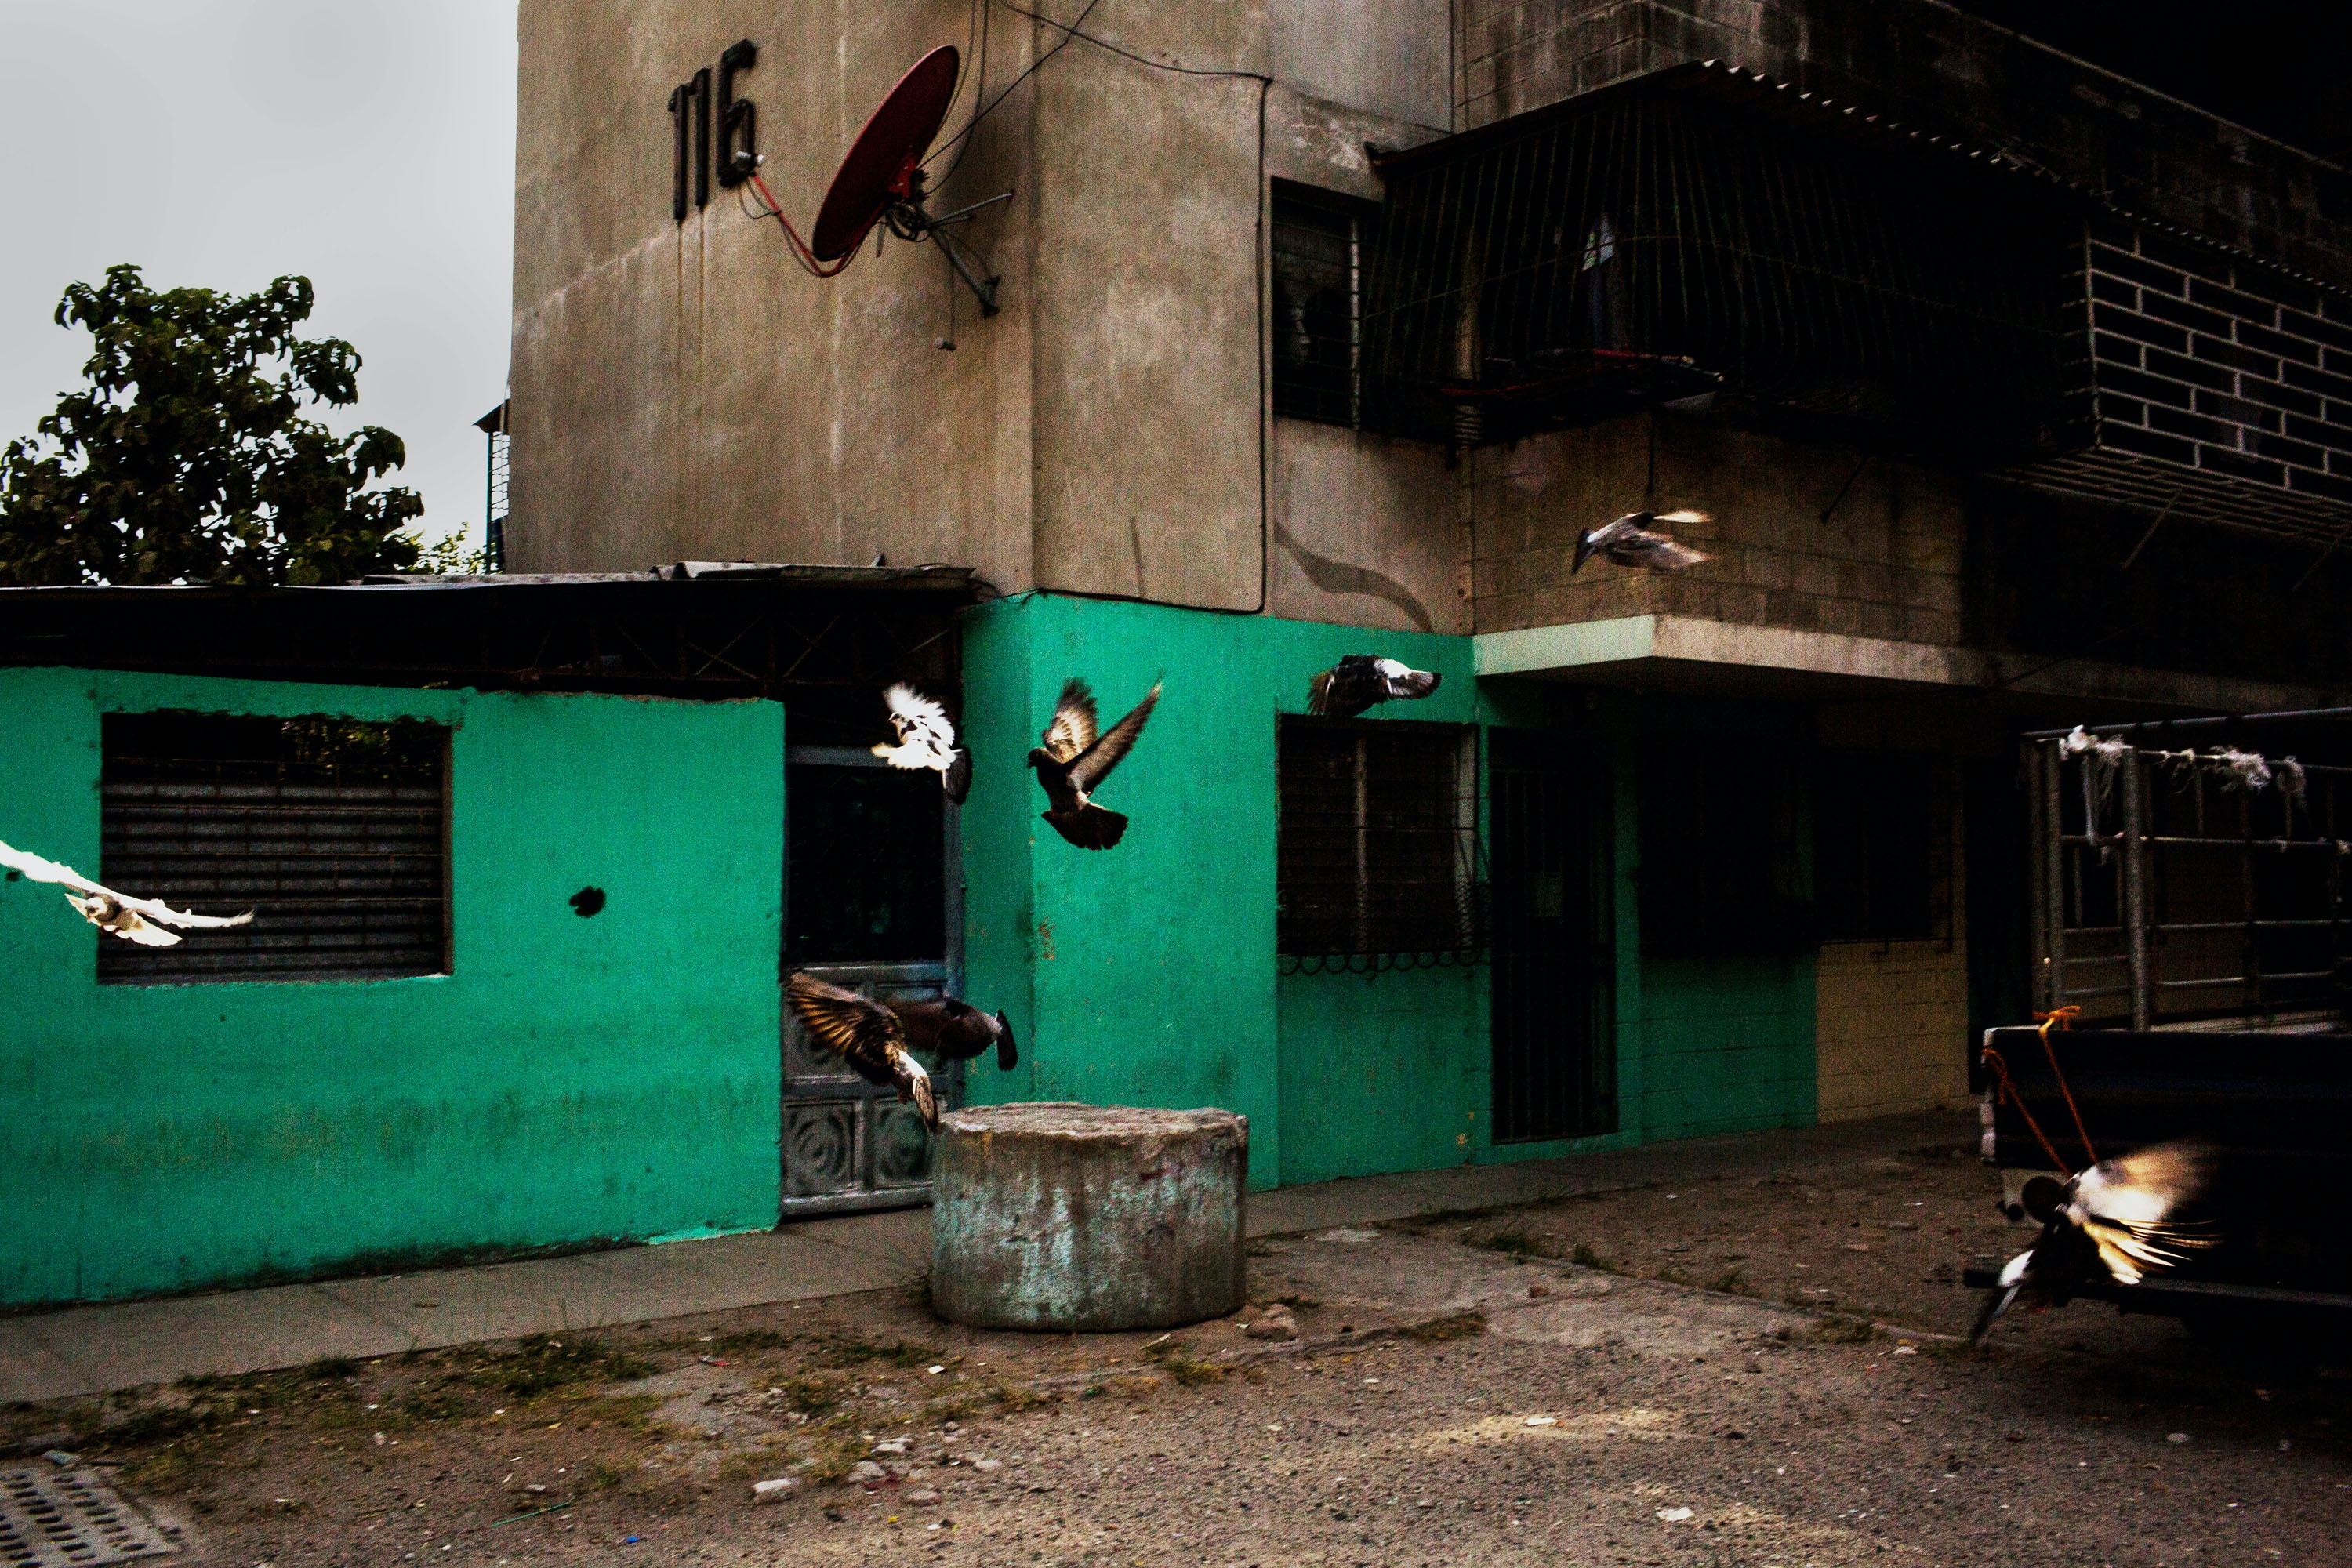 April 2017, El Salvador, San Salvador. Birds fly through a housing project in gang controlled Zacamil. (Natalie Keyssar)